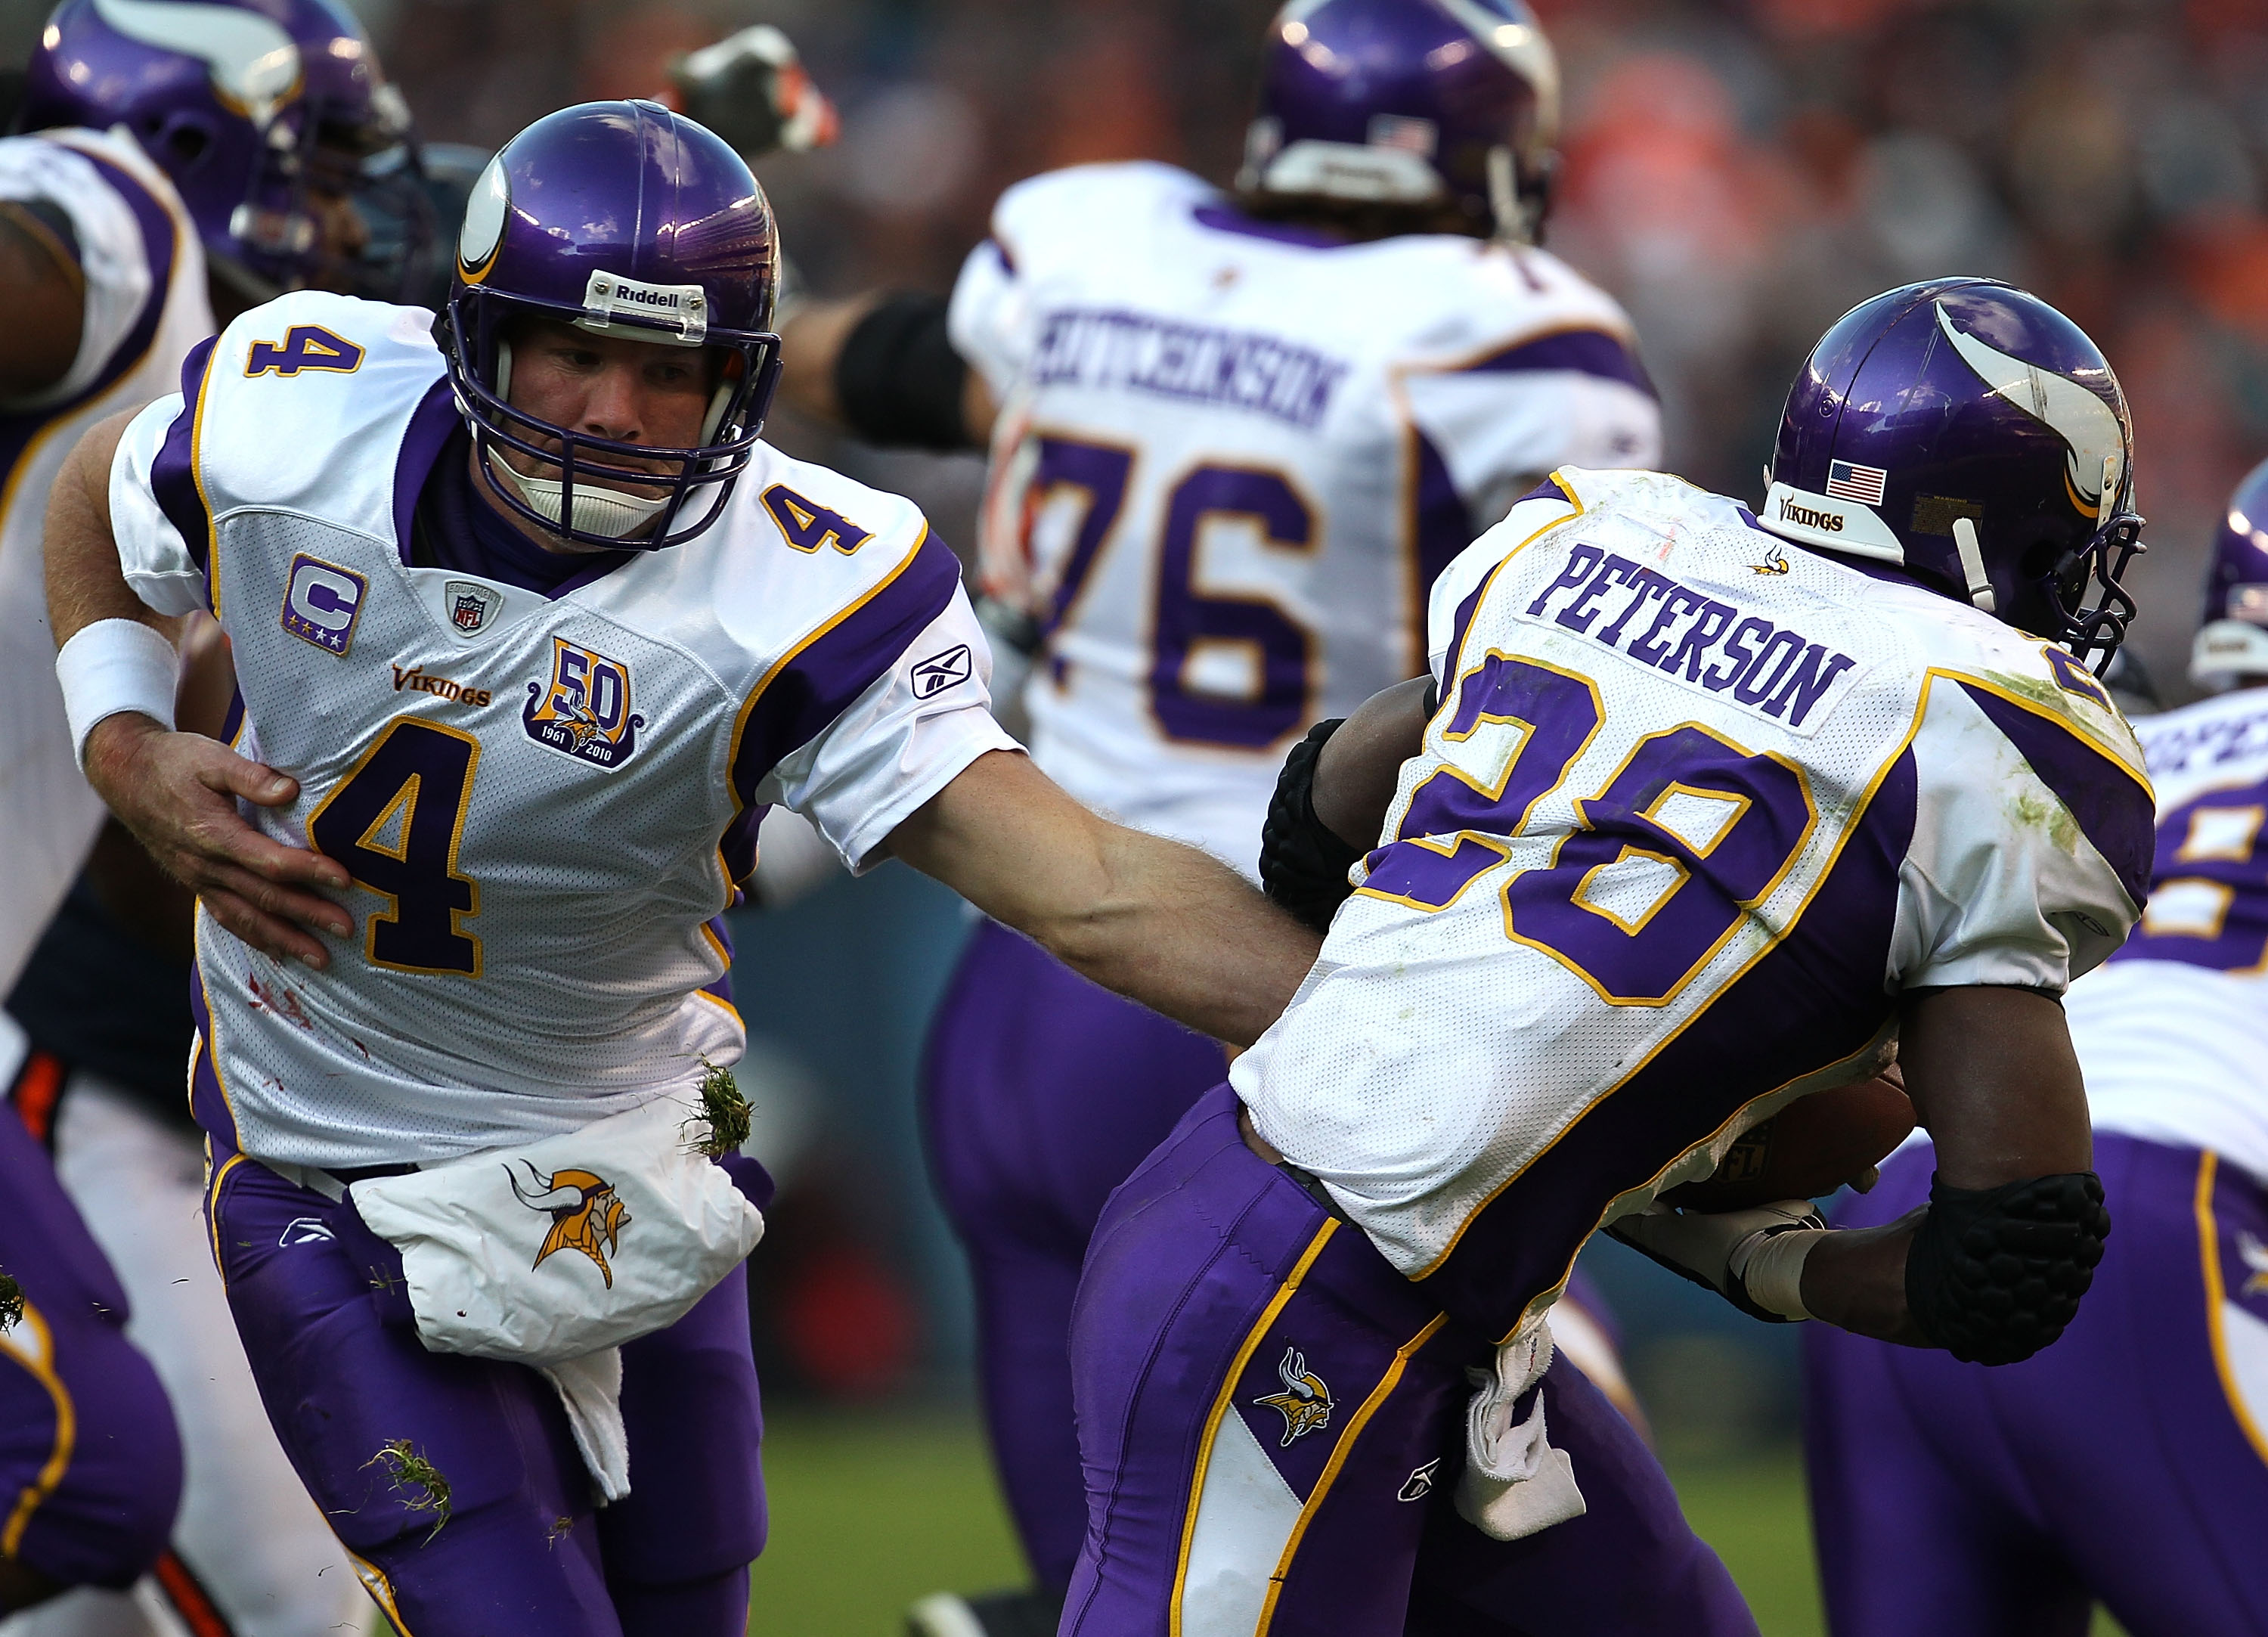 CHICAGO - NOVEMBER 14: Brett Favre #4 of the Minnesota Vikings hands off to Adrian Peterson #28 against the Chicago Bears at Soldier Field on November 14, 2010 in Chicago, Illinois. The Bears defeated the Vikings 27-13. (Photo by Jonathan Daniel/Getty Ima